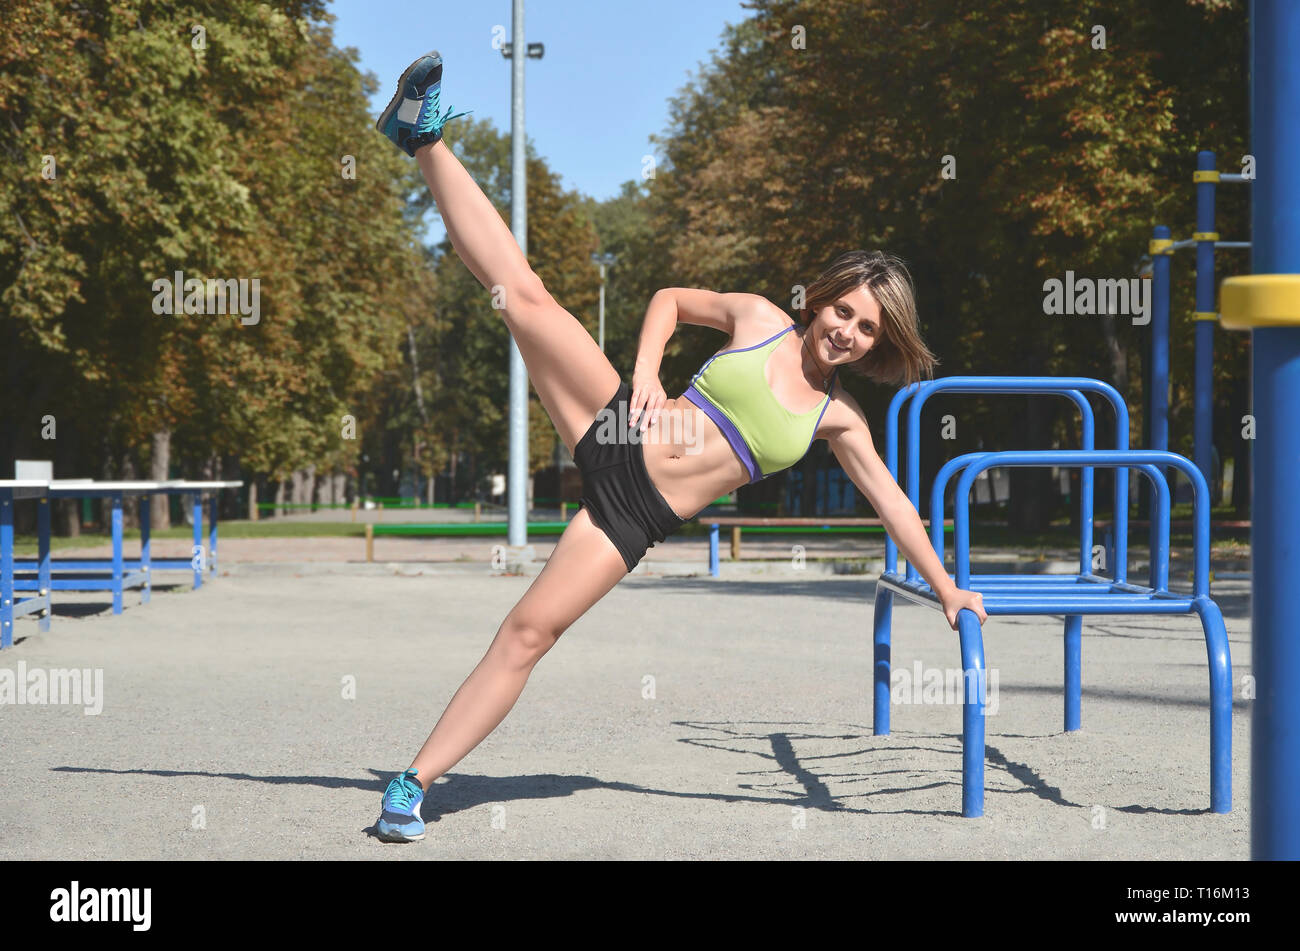 A young caucasian female athlete in bright green sport clothes practicing leg rides on the sports gym for active outdoor recreation. Summer sports and - Stock Image